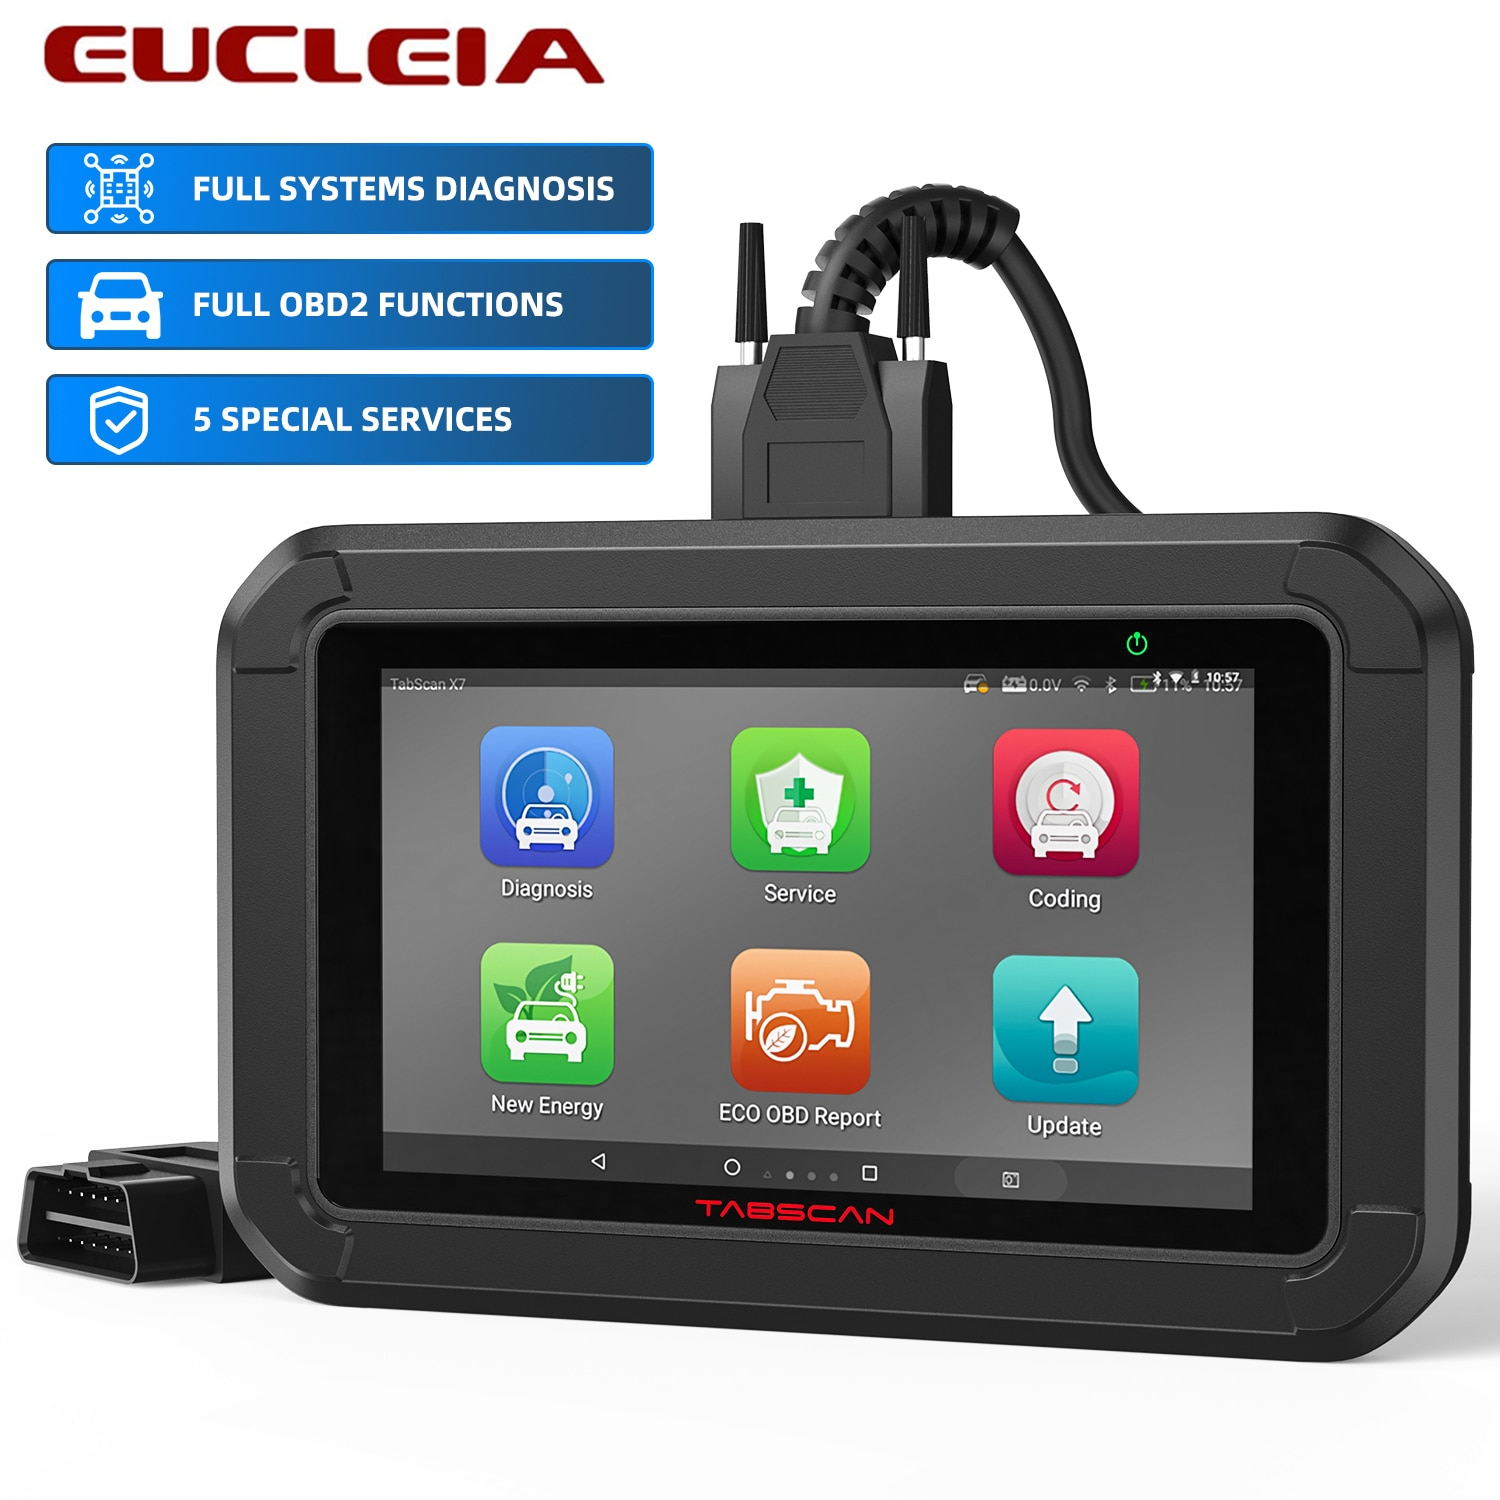 EUCLEIA Tabscan X7 Professional OBD2 Diagnostic Scanner Full System Oil SAS BMS EPB TPS Reset OBD 2 Automotive Tools Free Update